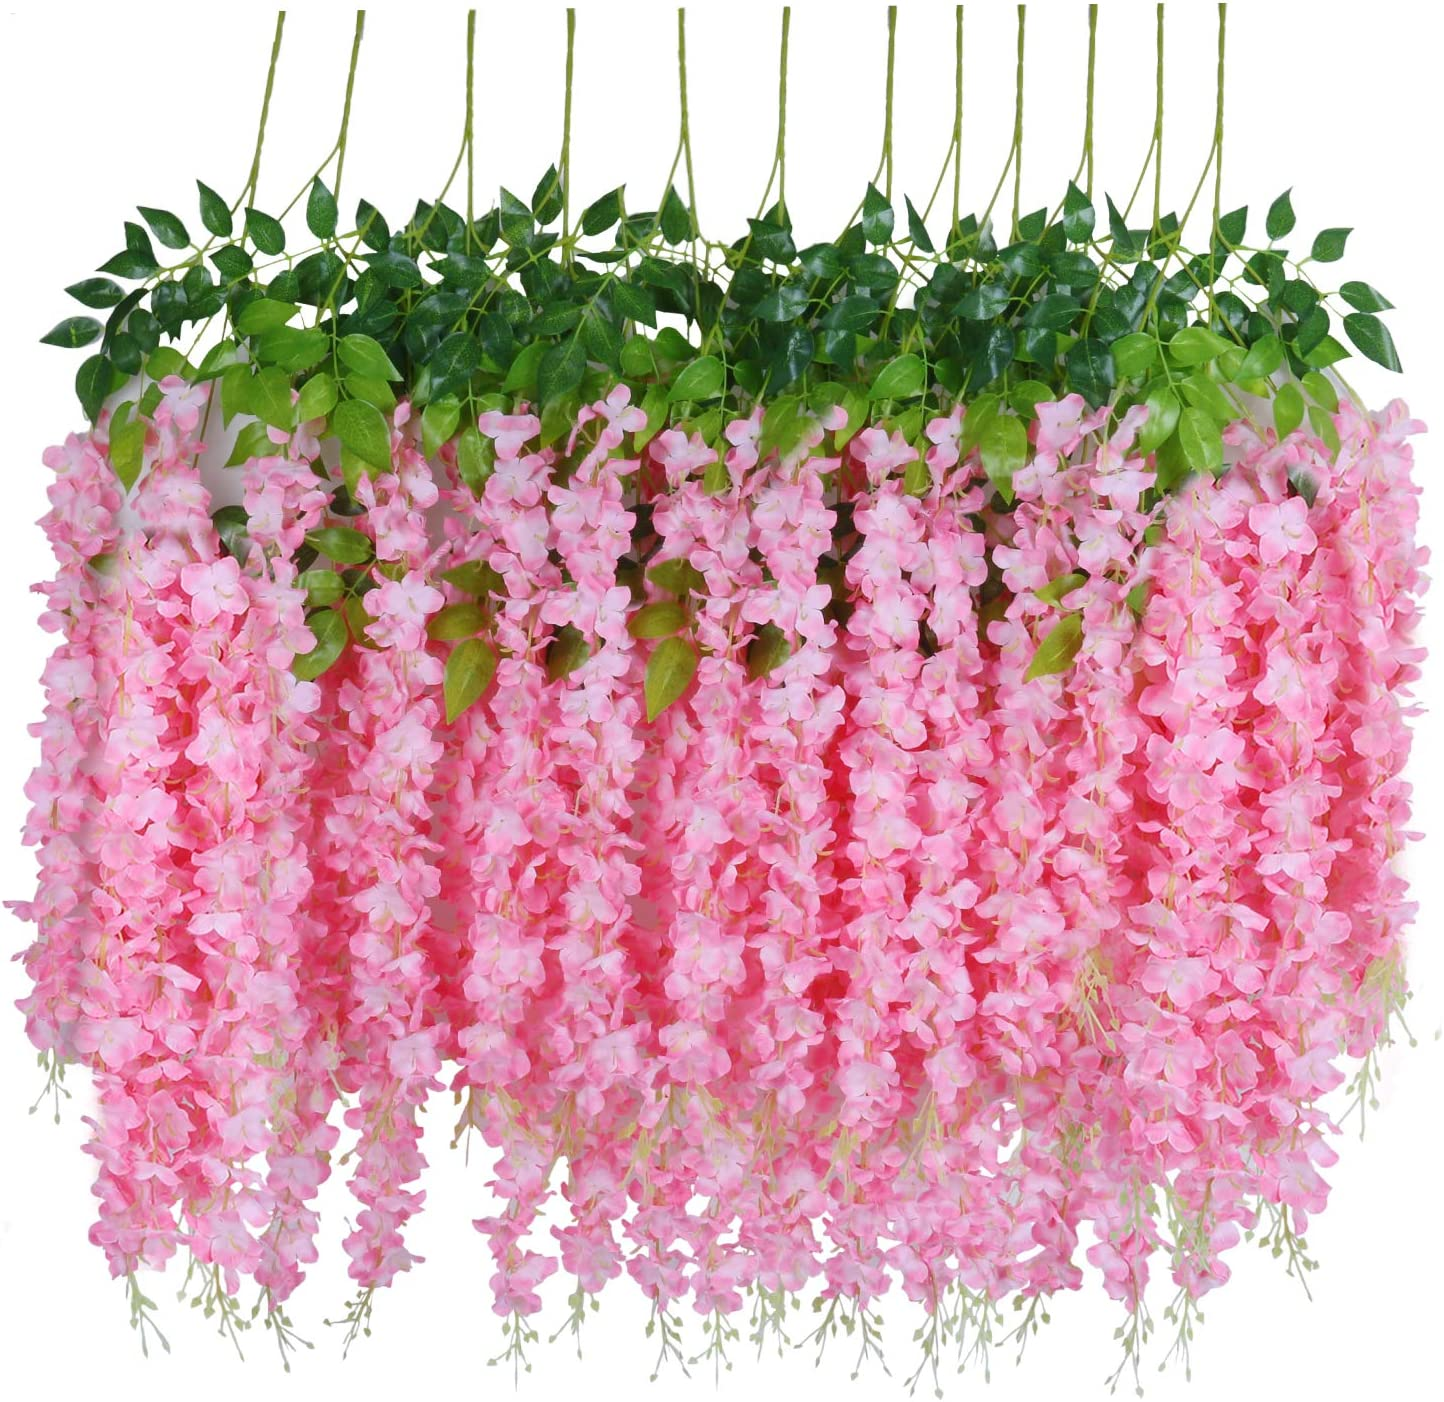 Combor 12pcs Artificial Fake Wisteria Vine Garland-GreenDec 3.6Ft//Piece Silk Wisteria Vine Ratta Hanging Flower for Home Garden Wedding Decor Pink